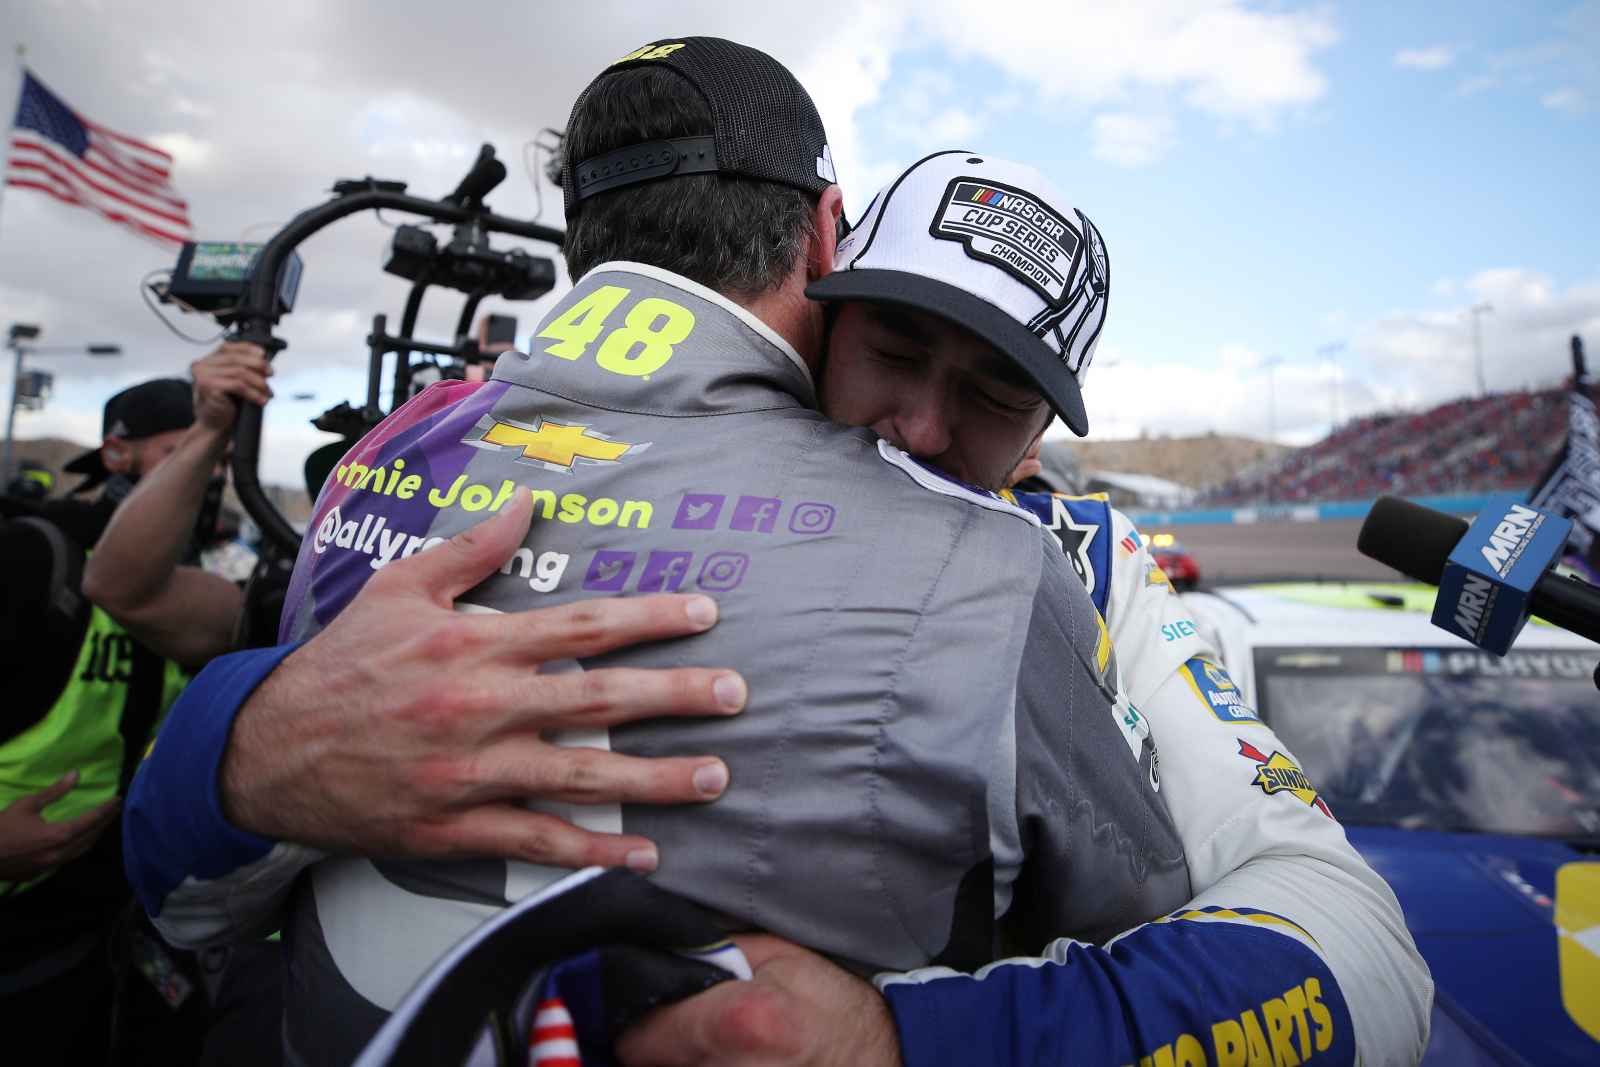 Jimmie Johnson is a NASCAR legend while Chase Elliott is a young NASCAR star. The two drivers will be linked forever, though.